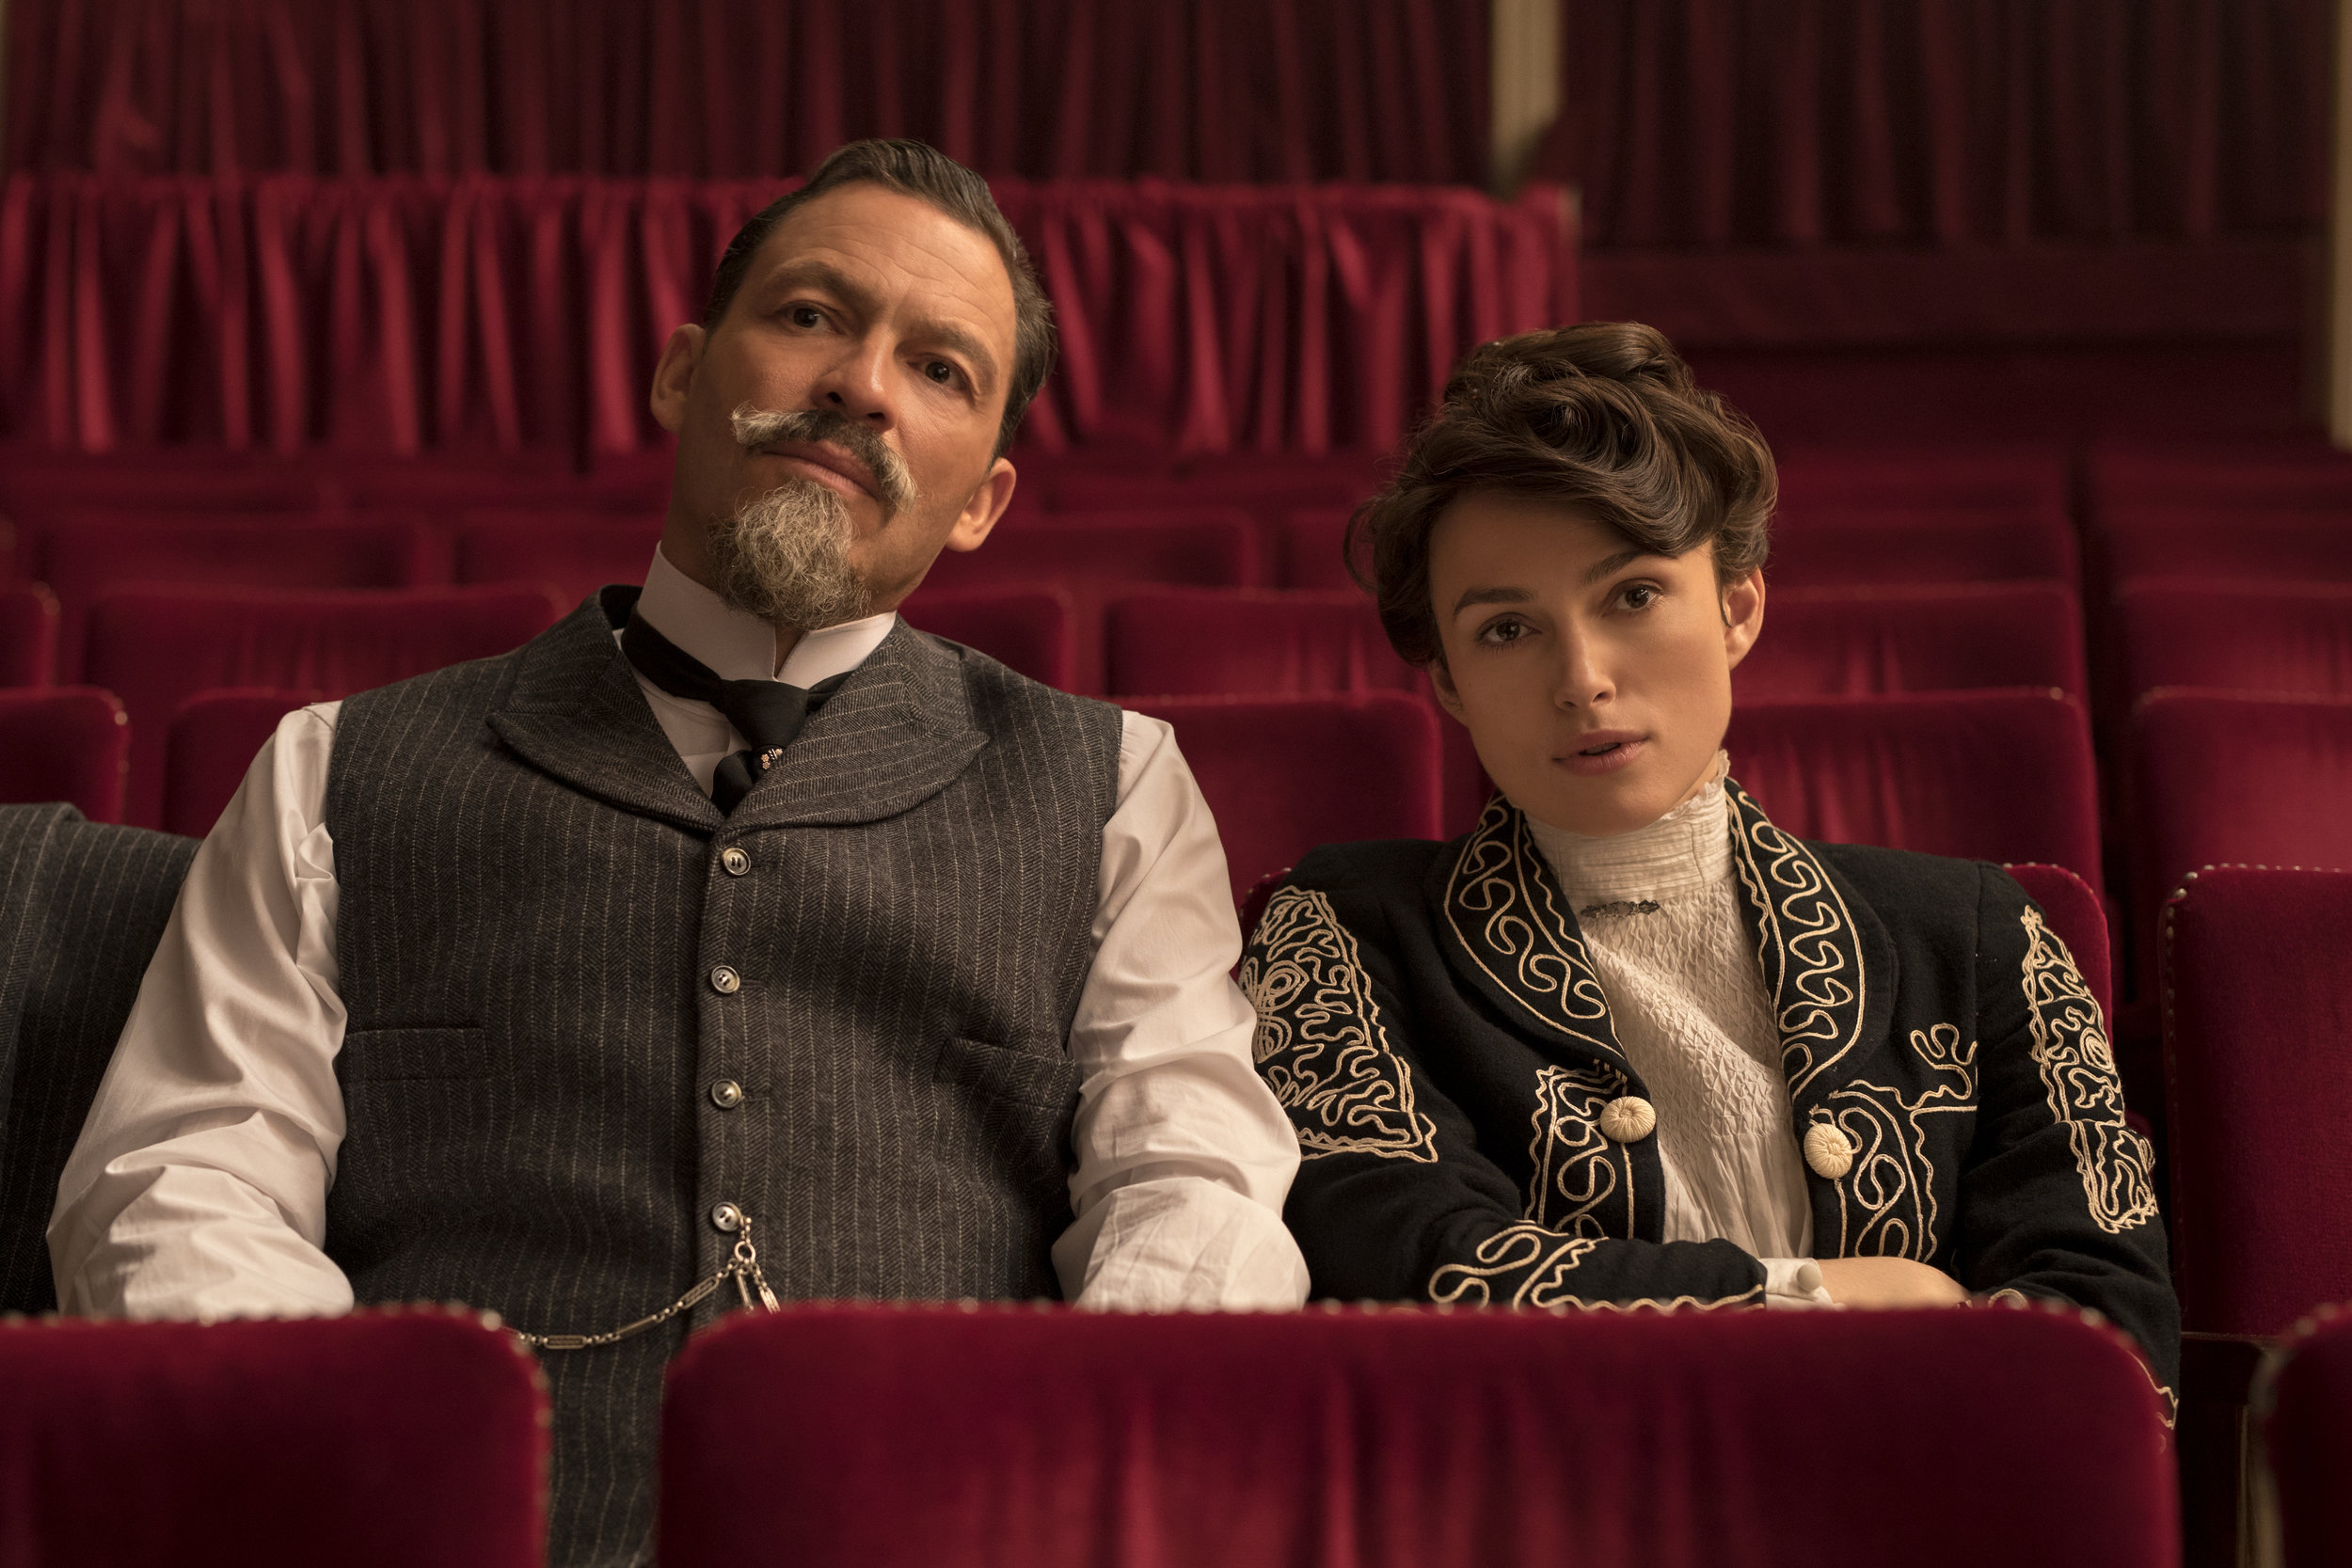 West as Willy and Knightley as Colette, a literary giantess and her Svengali